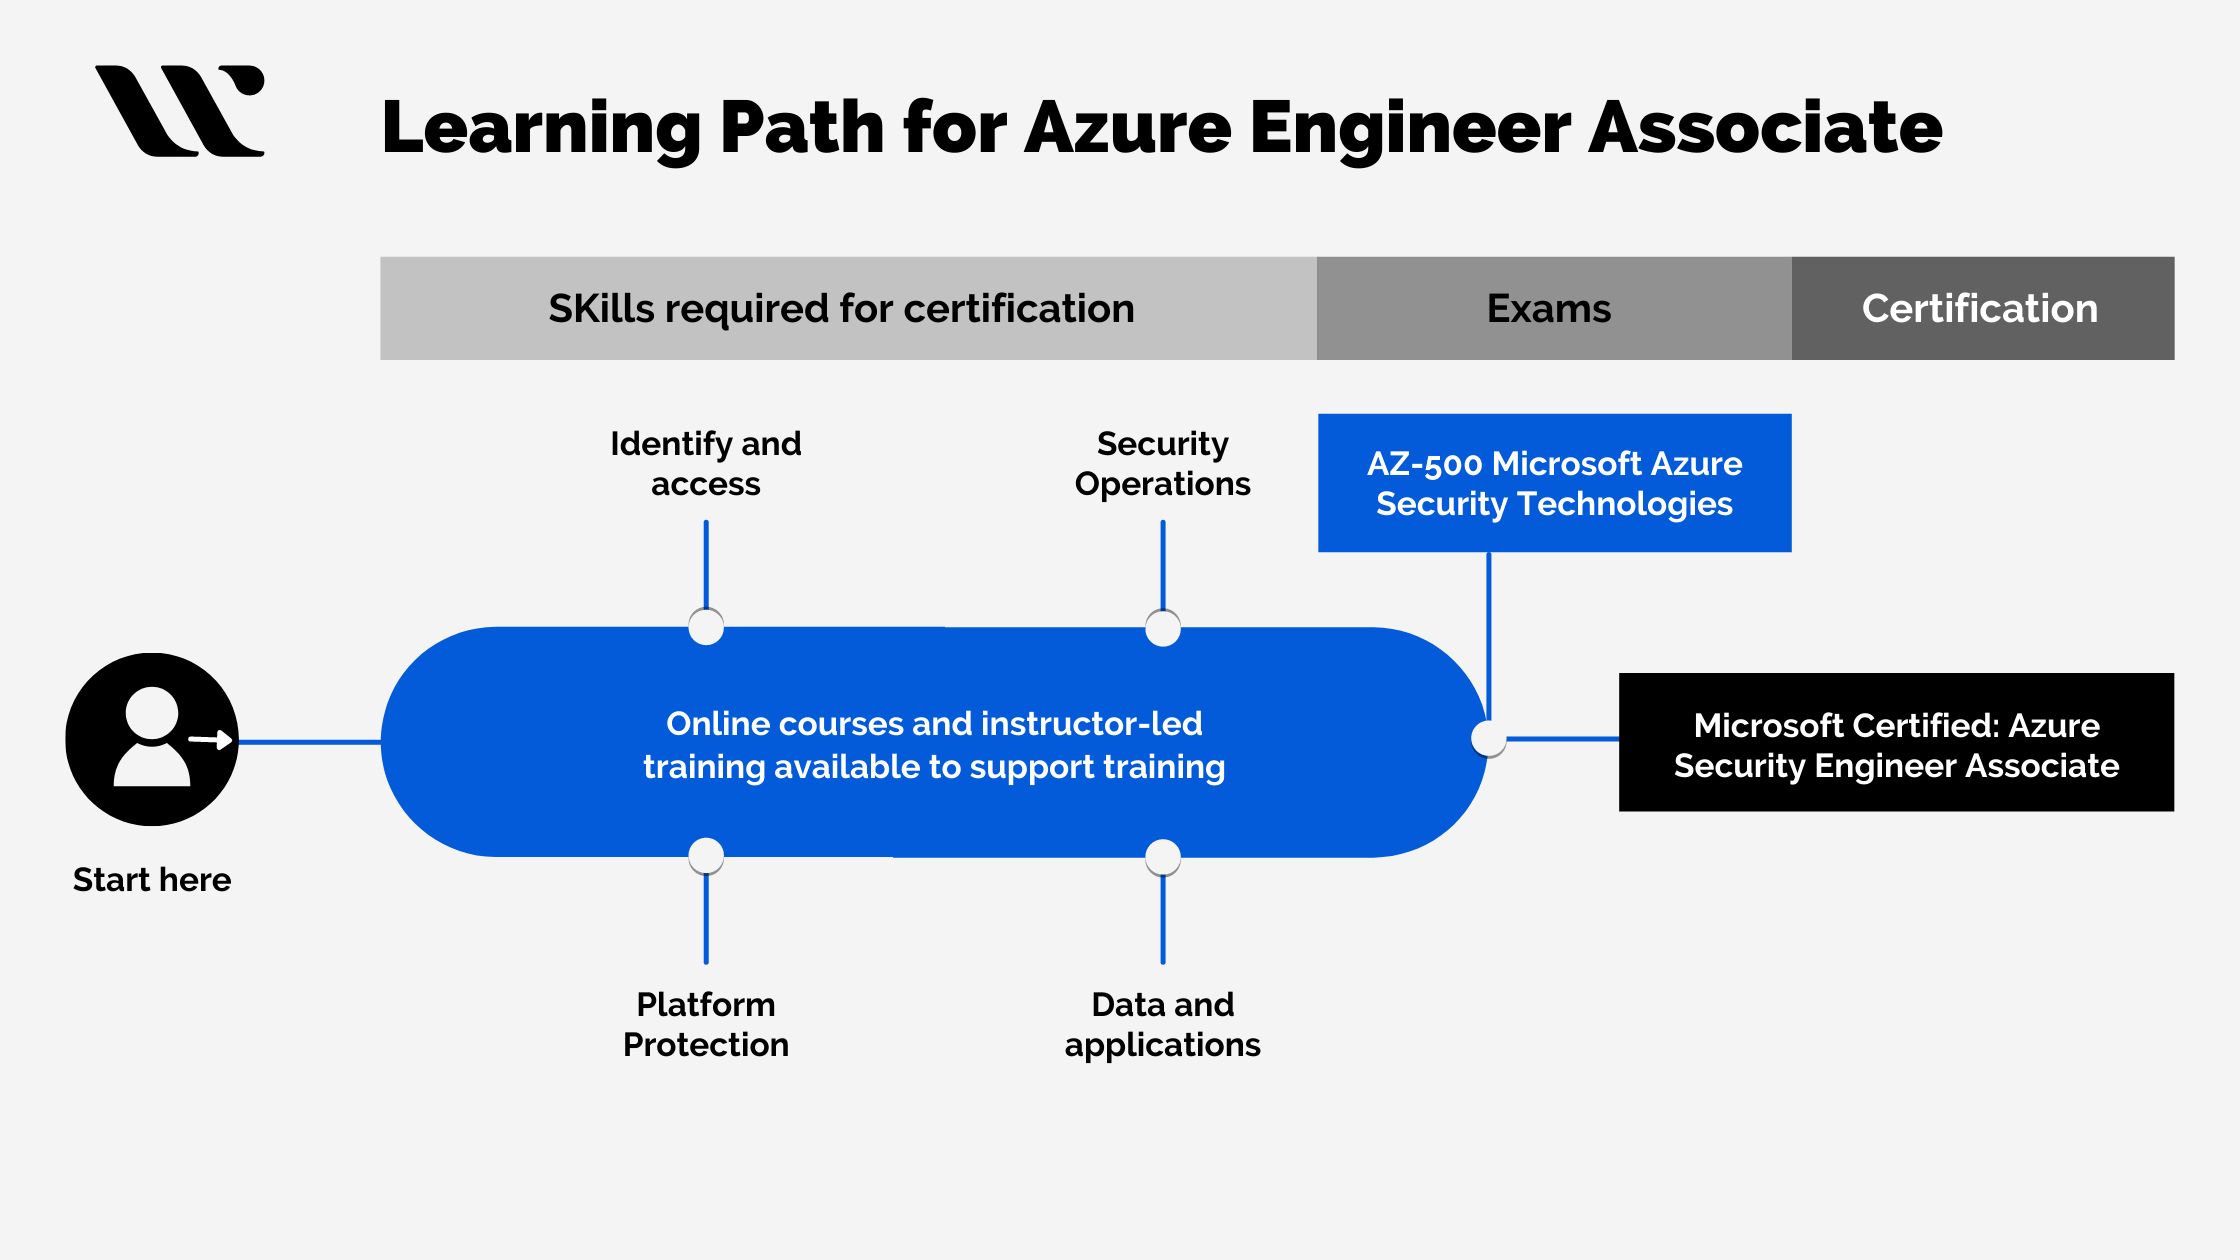 Learning Path for Azure Engineer Associate